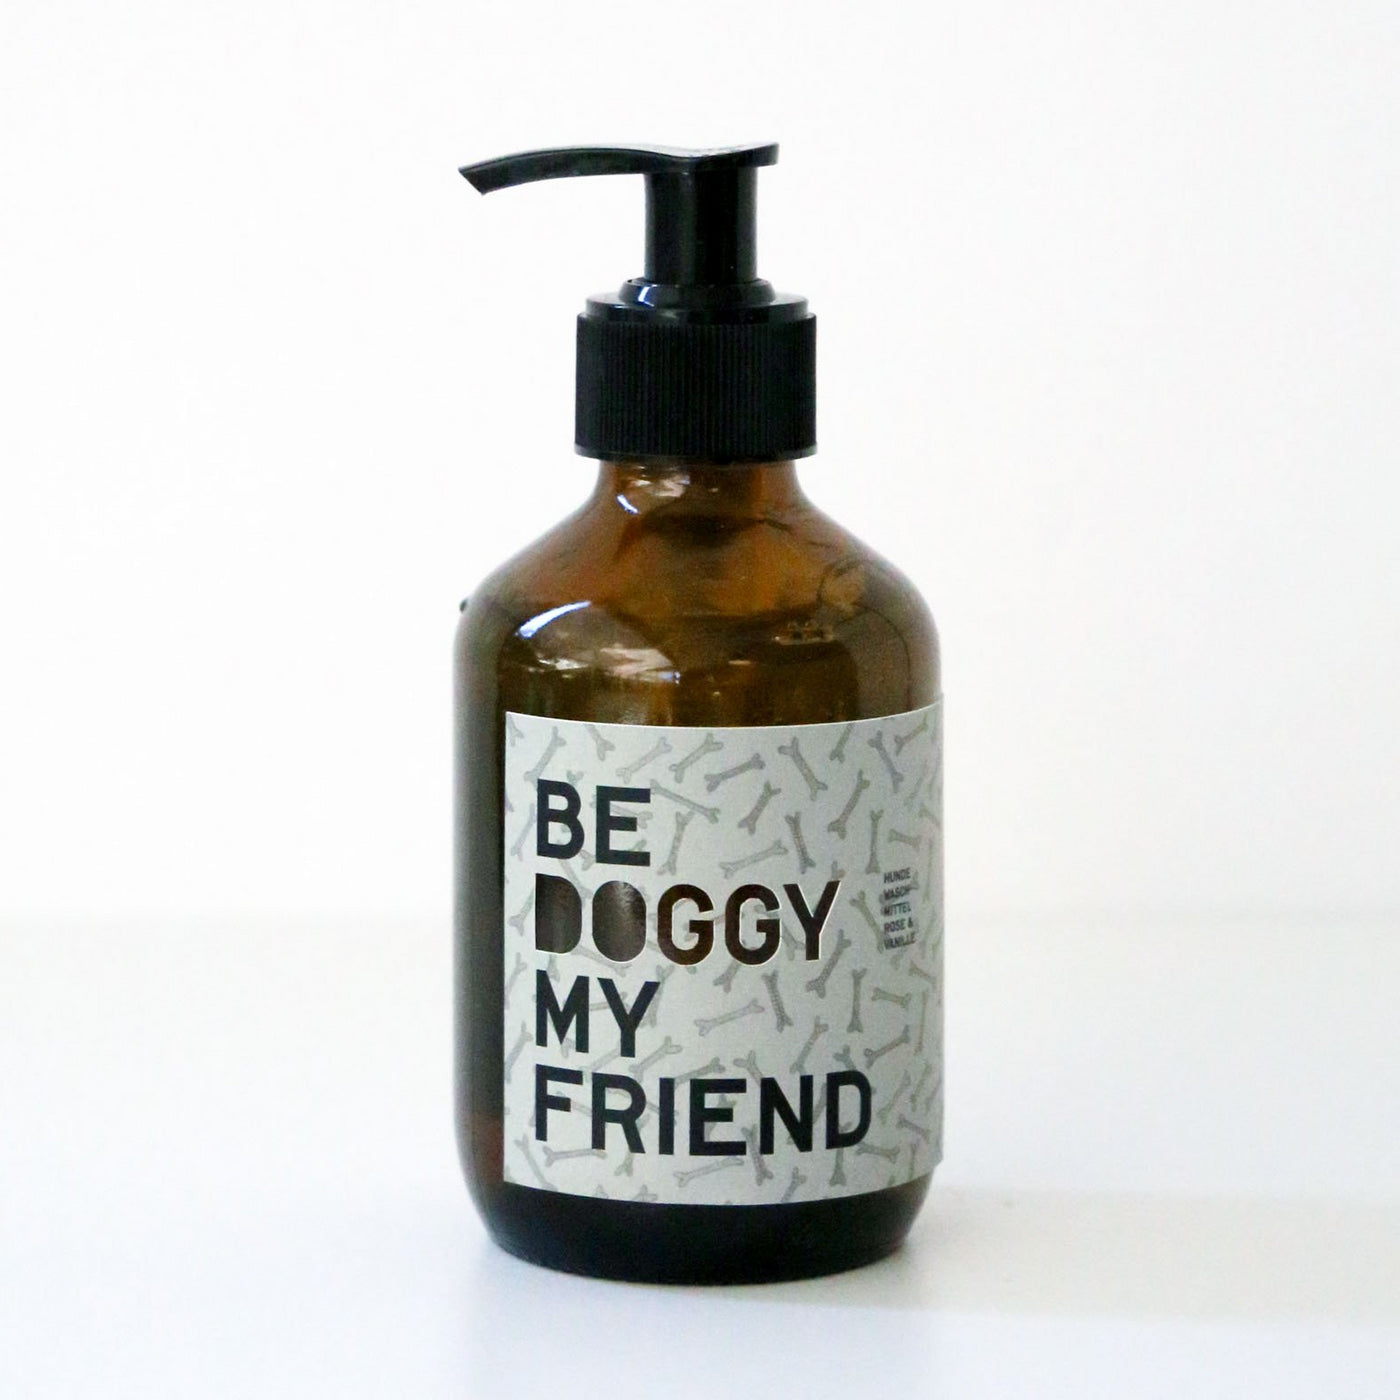 BE DOGGY MY FRIEND, Hundeshampoo mit Rose und Minze